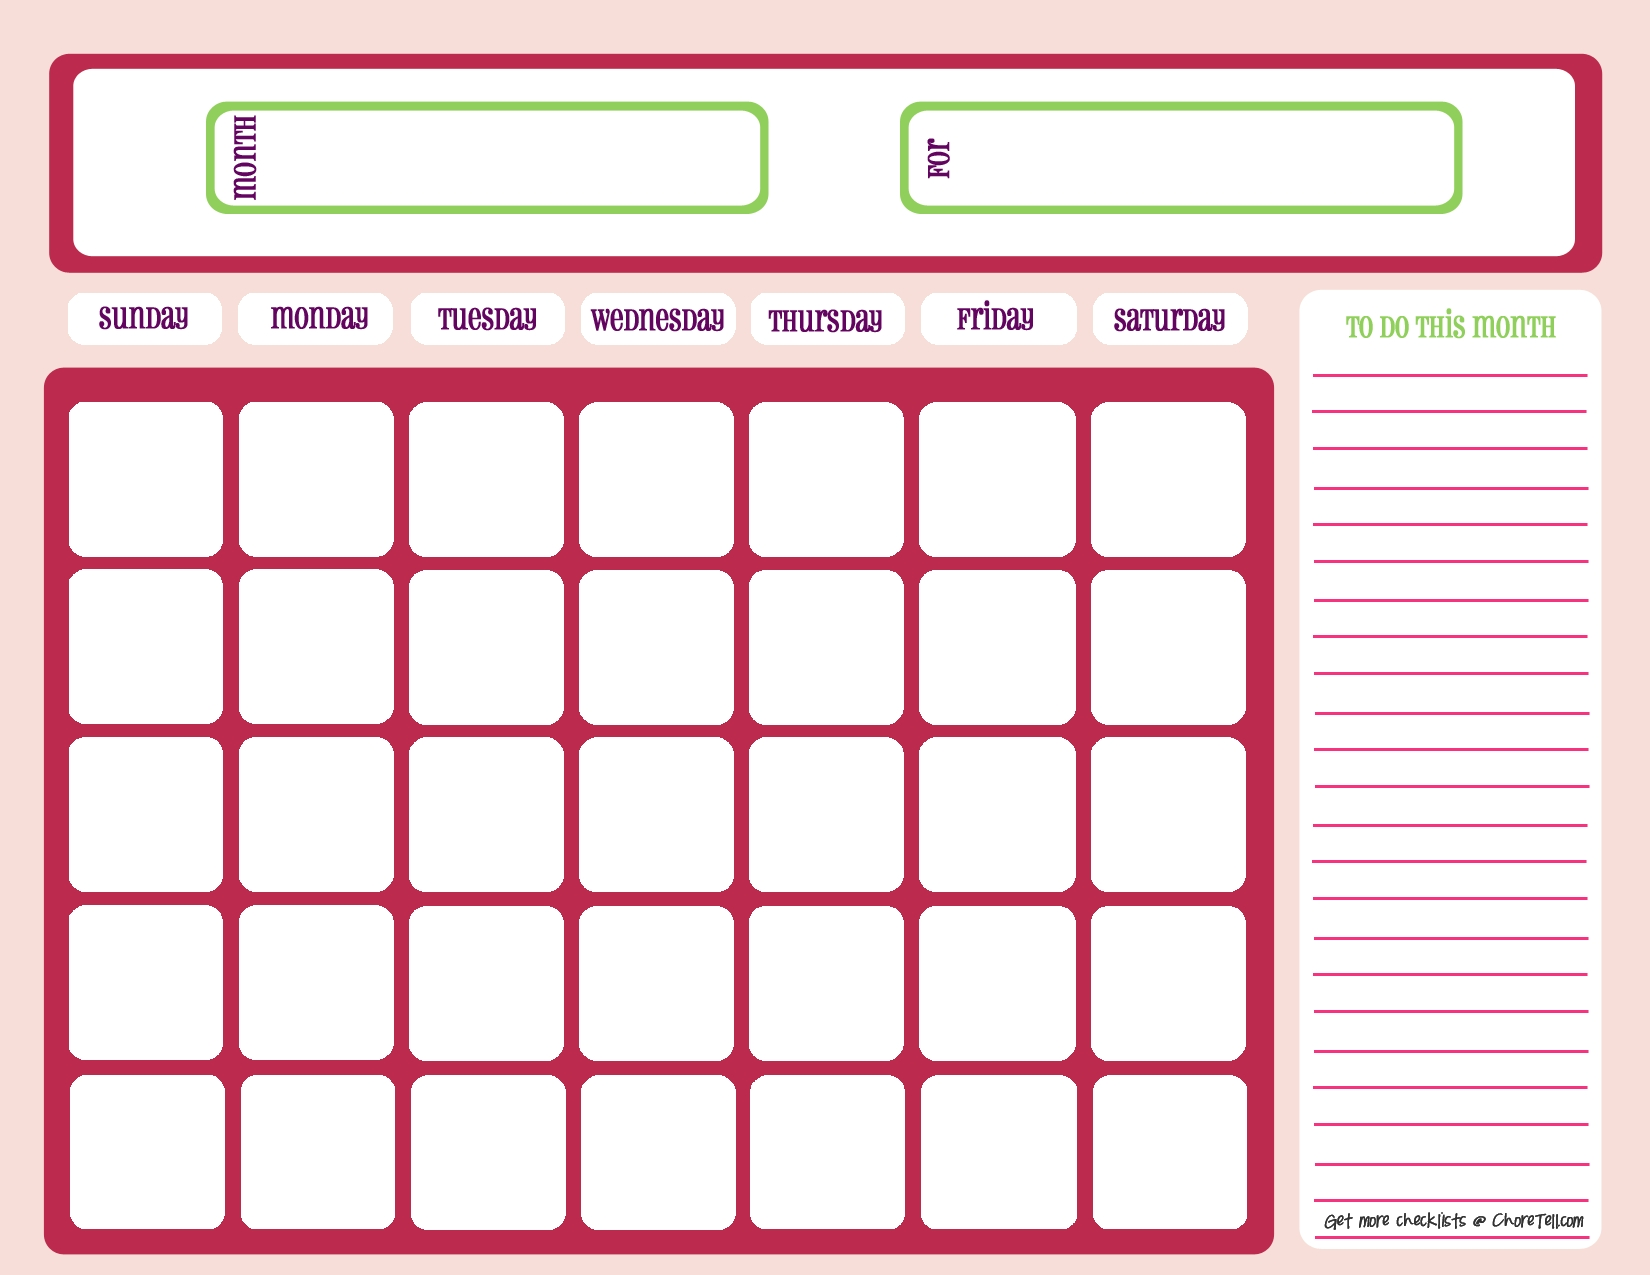 Monthly Calendar Checklist | Monthly Calendar Blank 2020